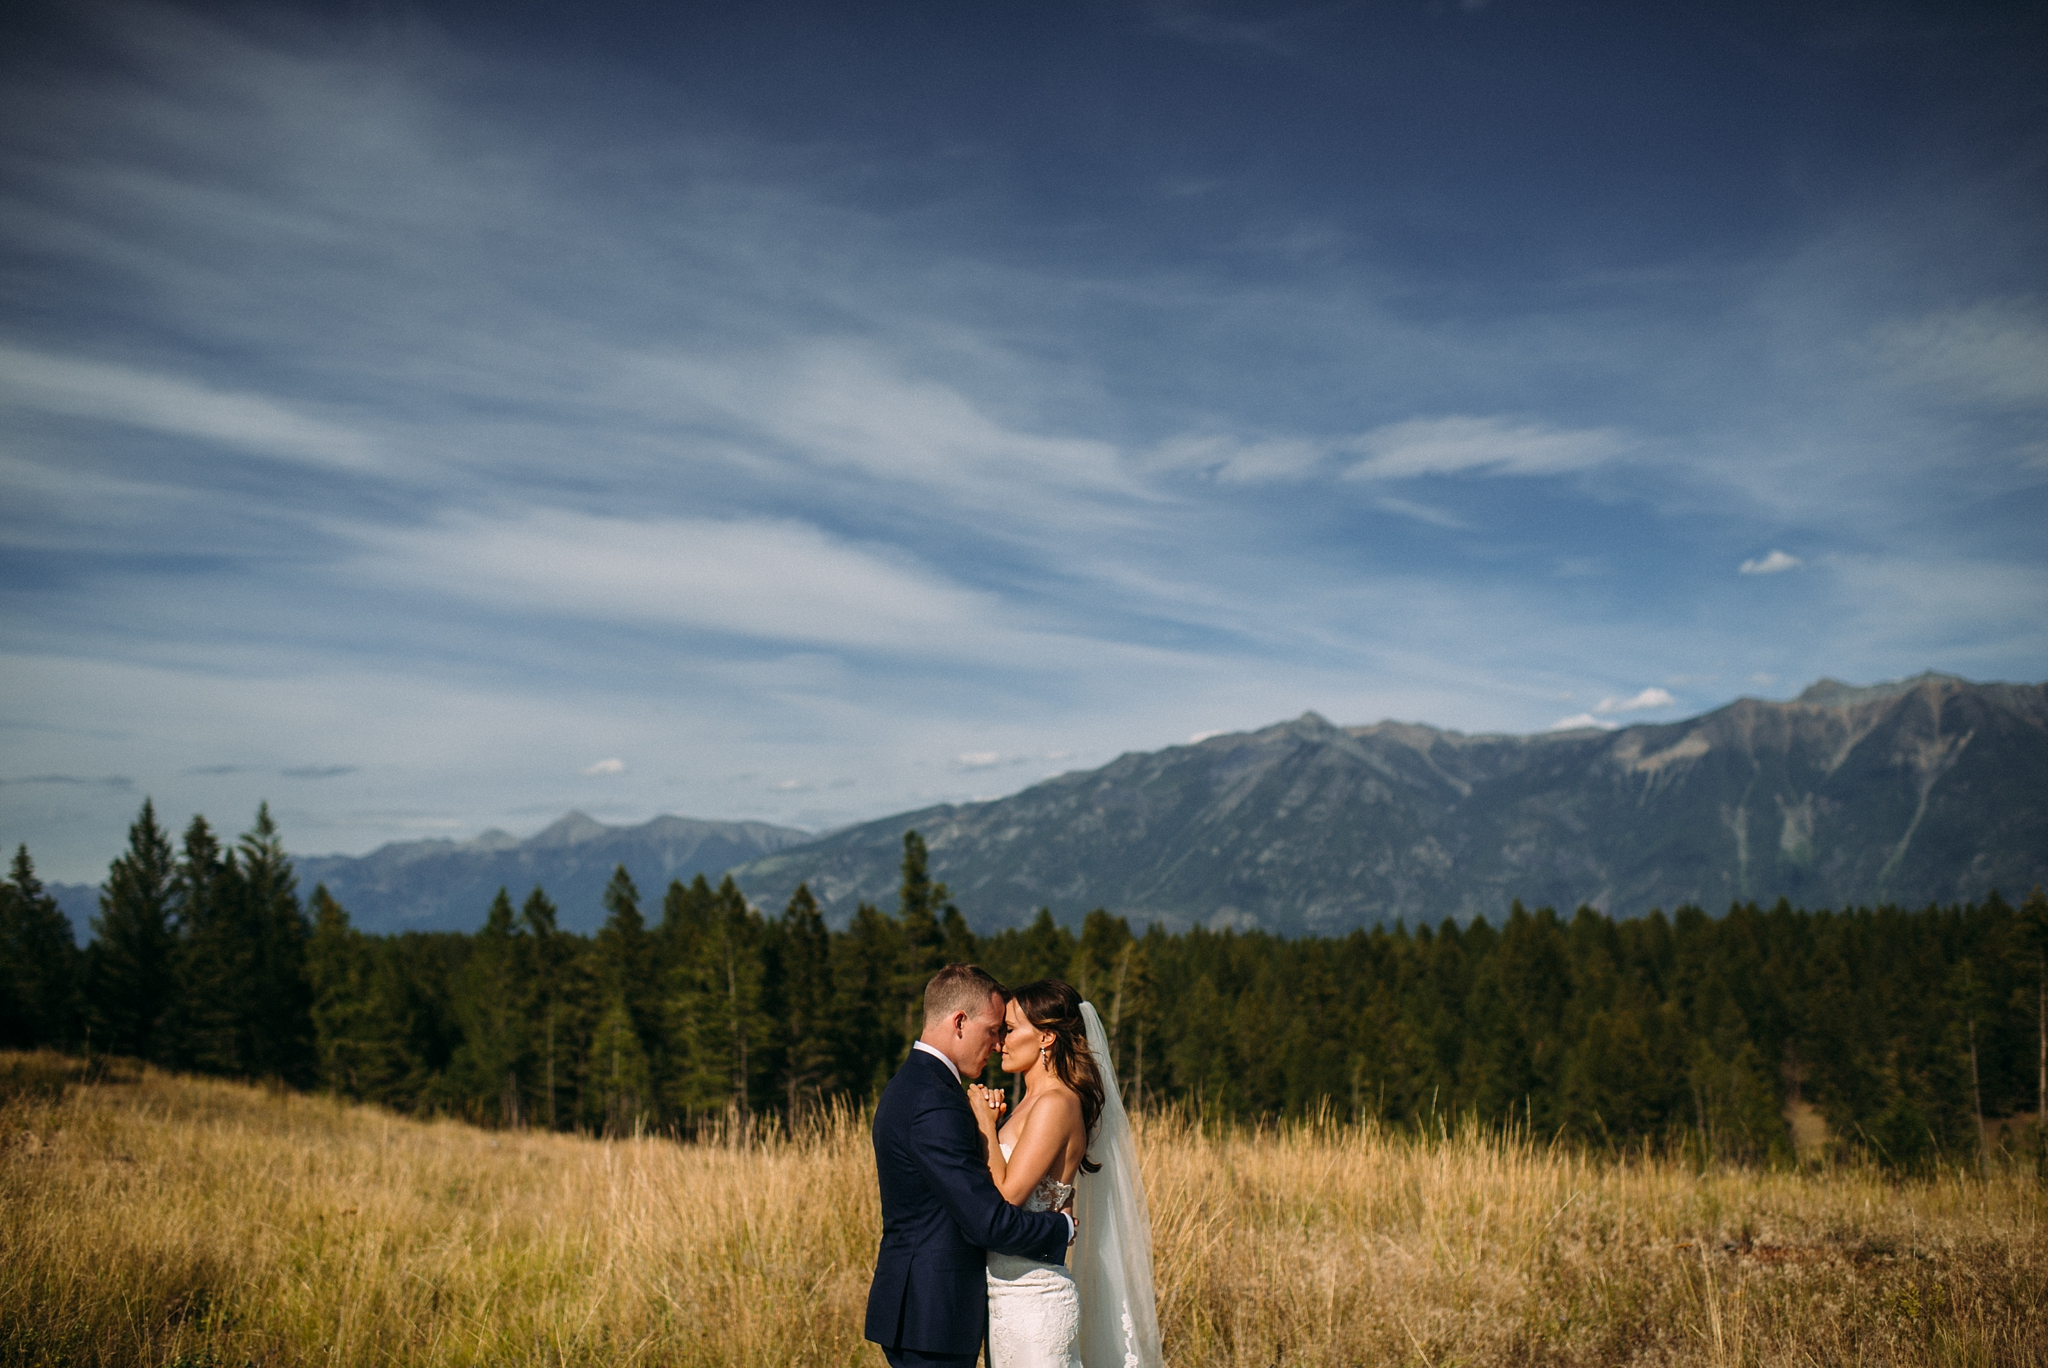 kaihla_tonai_intimate_wedding_elopement_photographer_4606